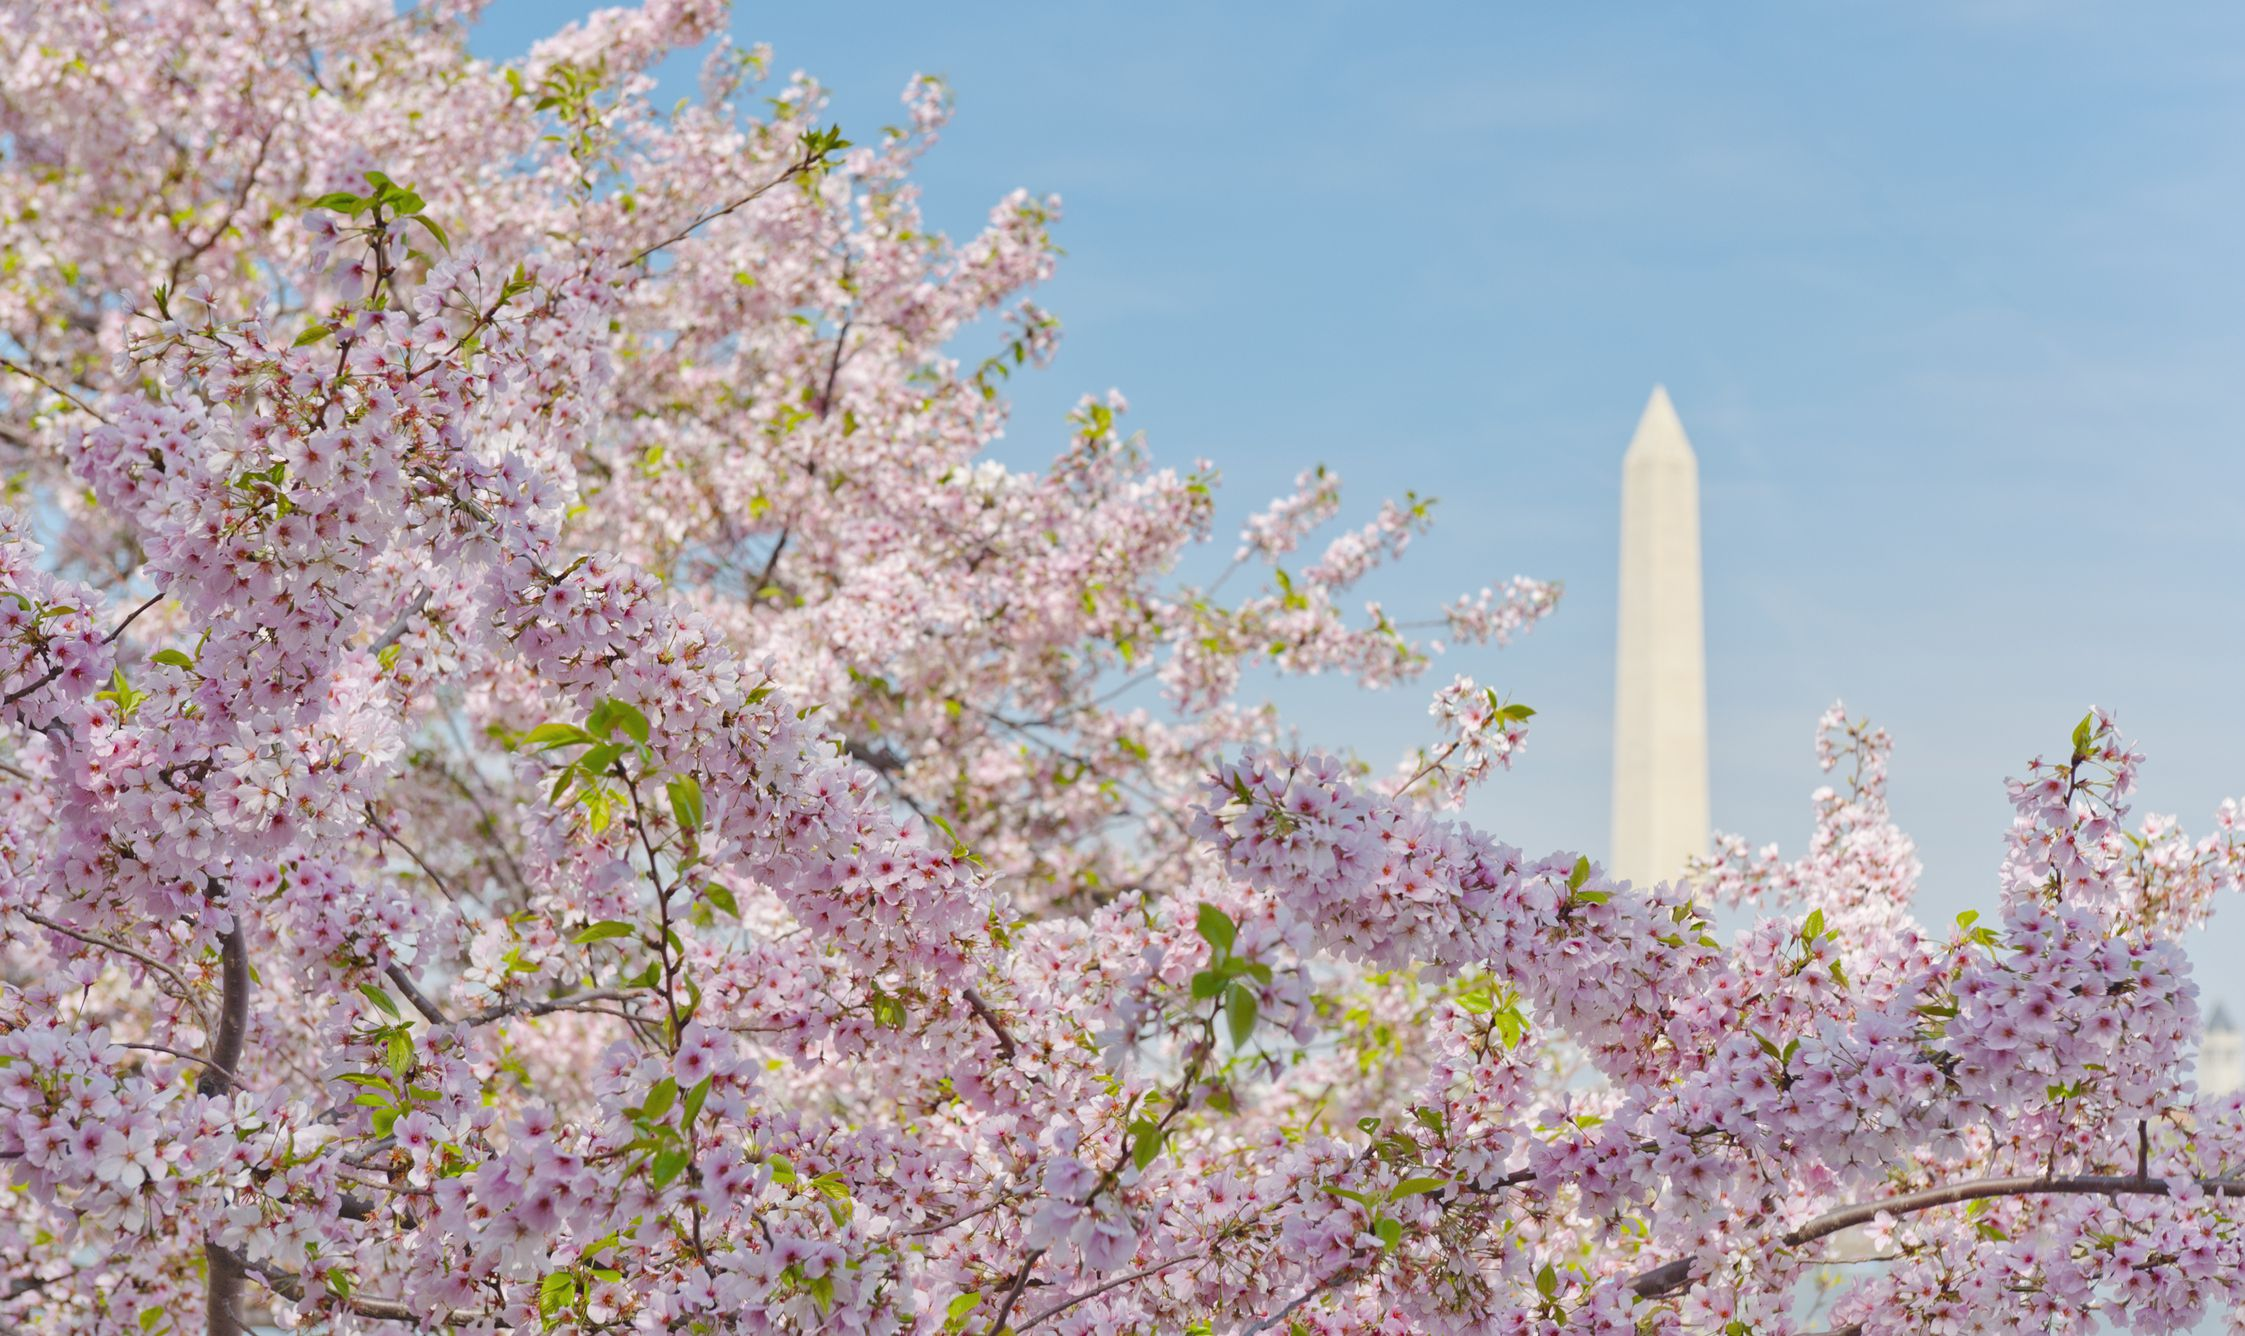 Your Trip to Washington, D.C.: The Complete Guide